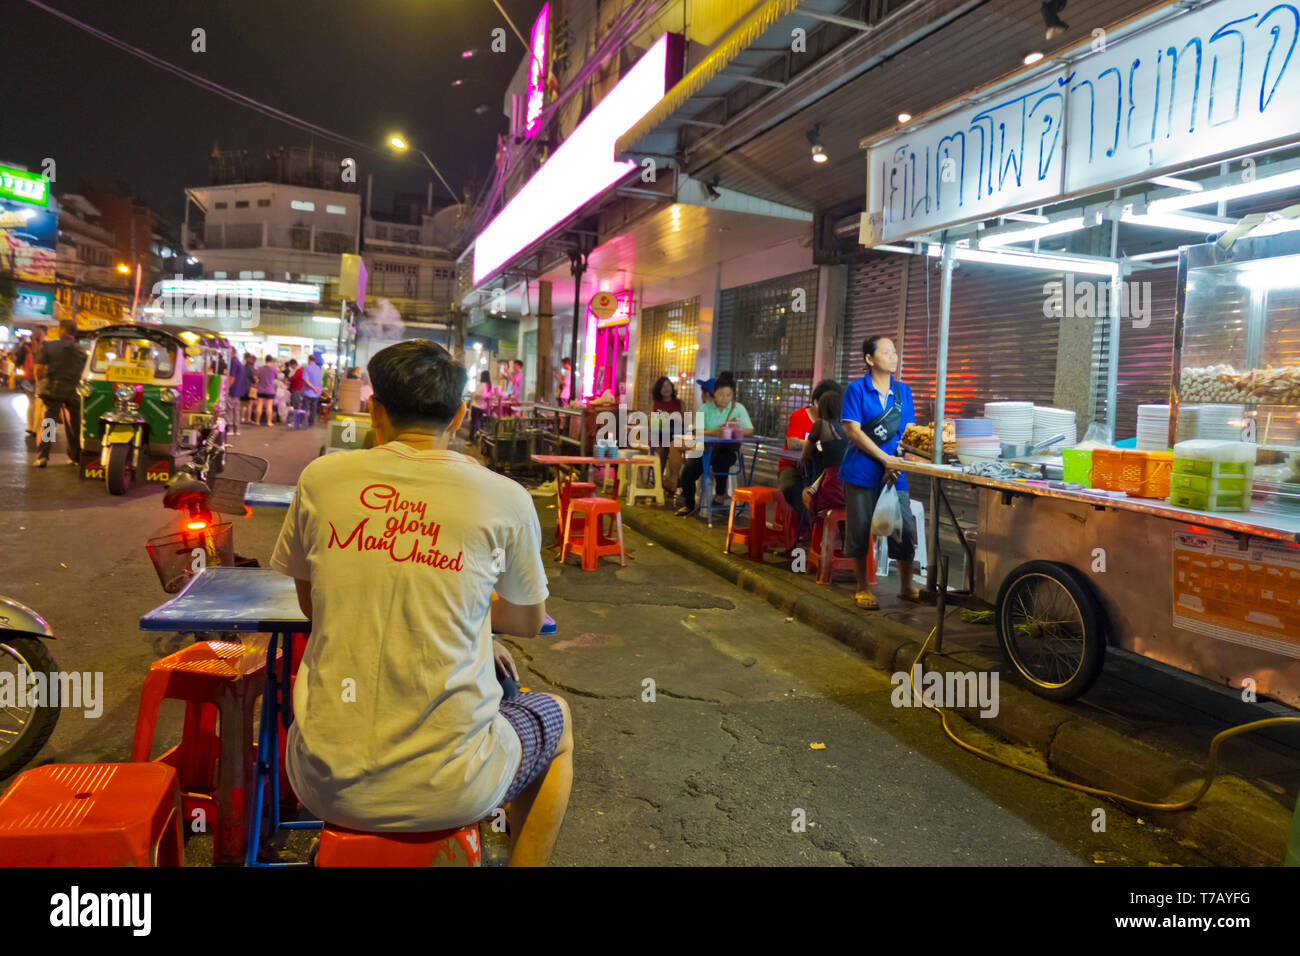 Street food stalls, Sip Sam Hang Road, Banglamphu, Bangkok, Thailand Stock Photo